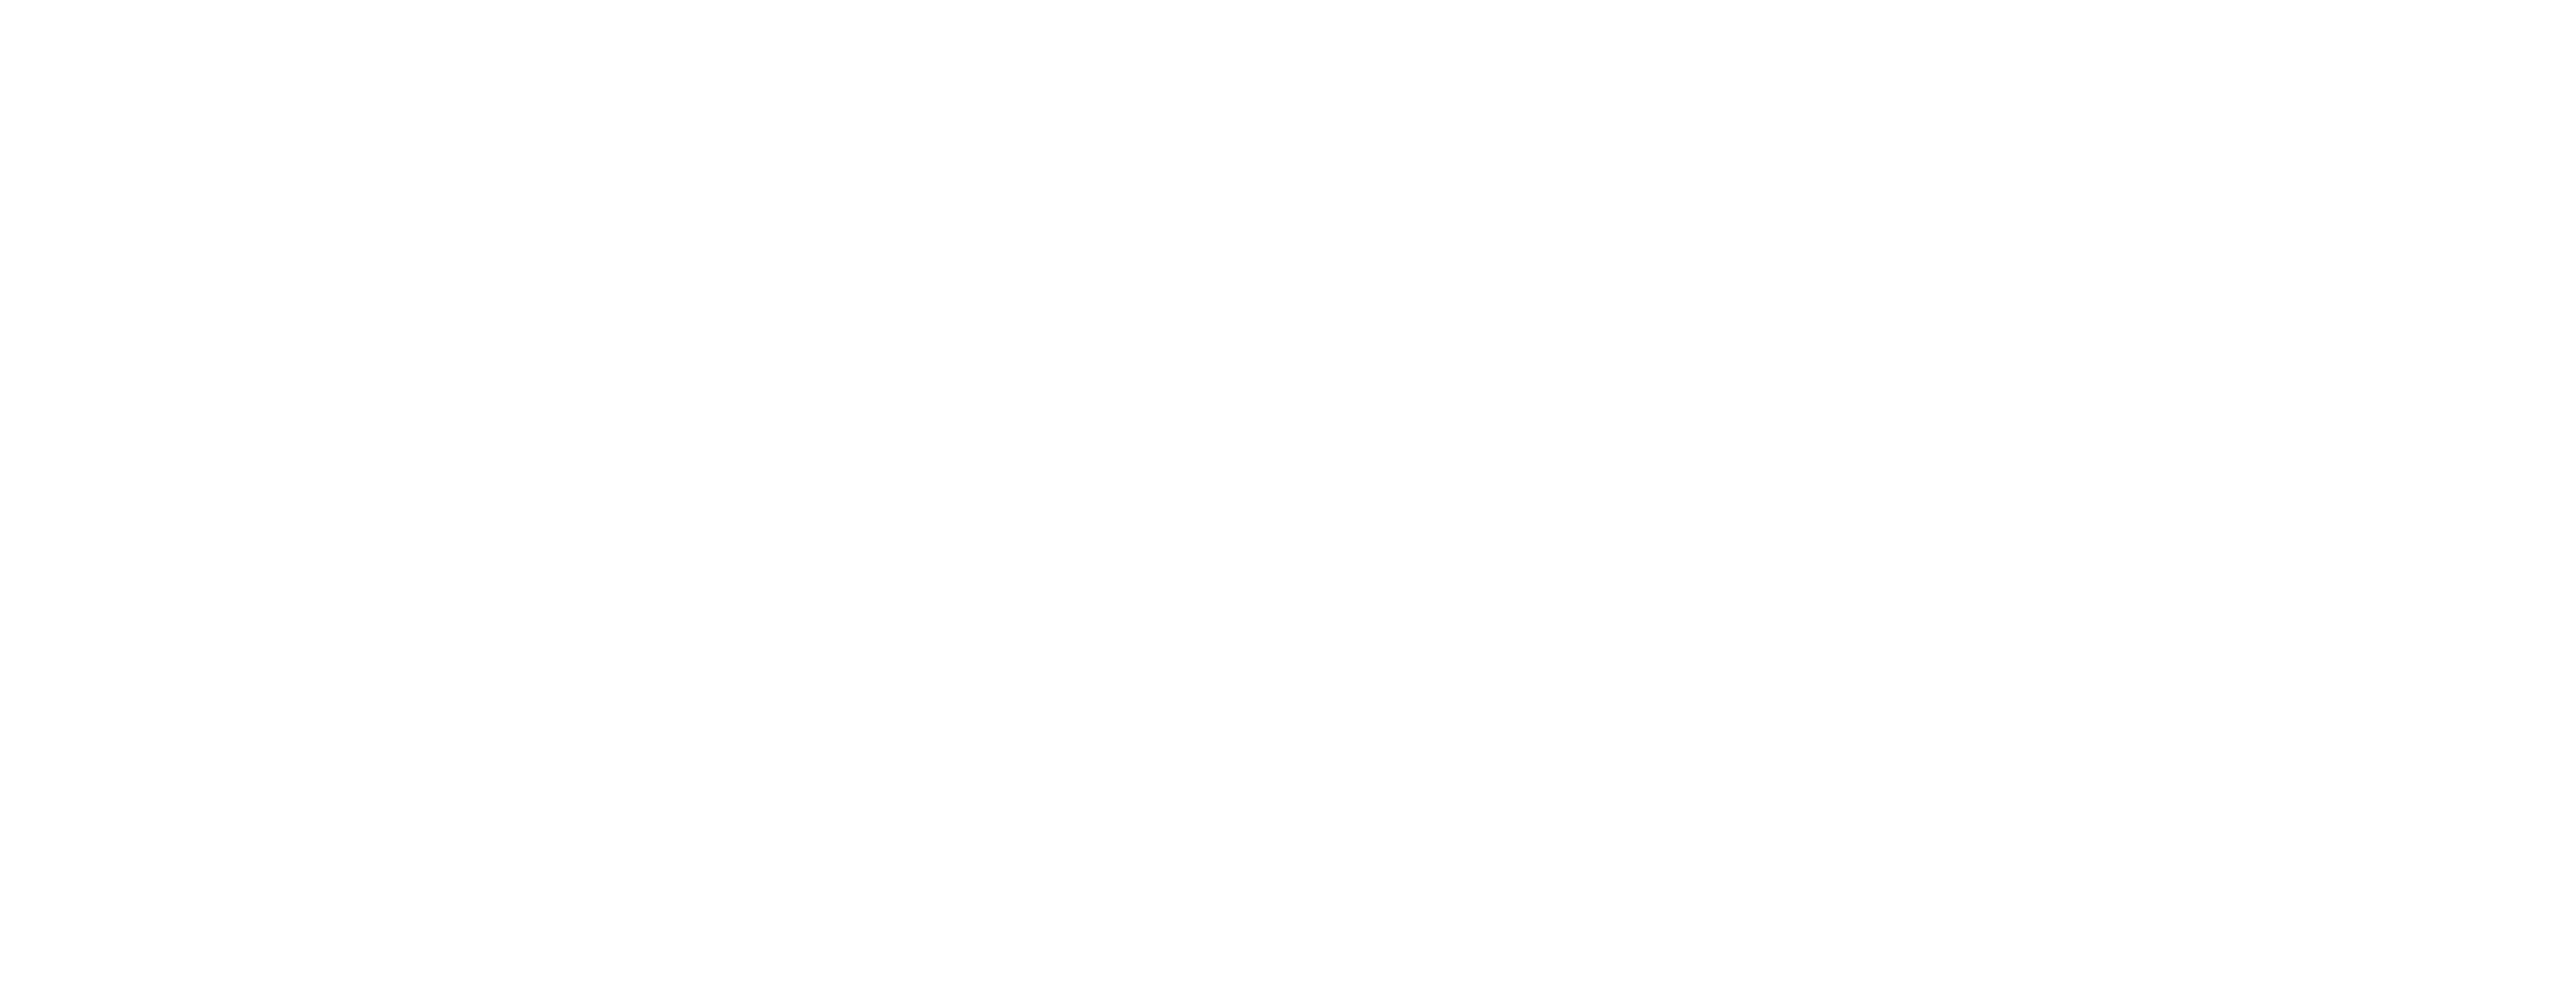 Apexa Consulting